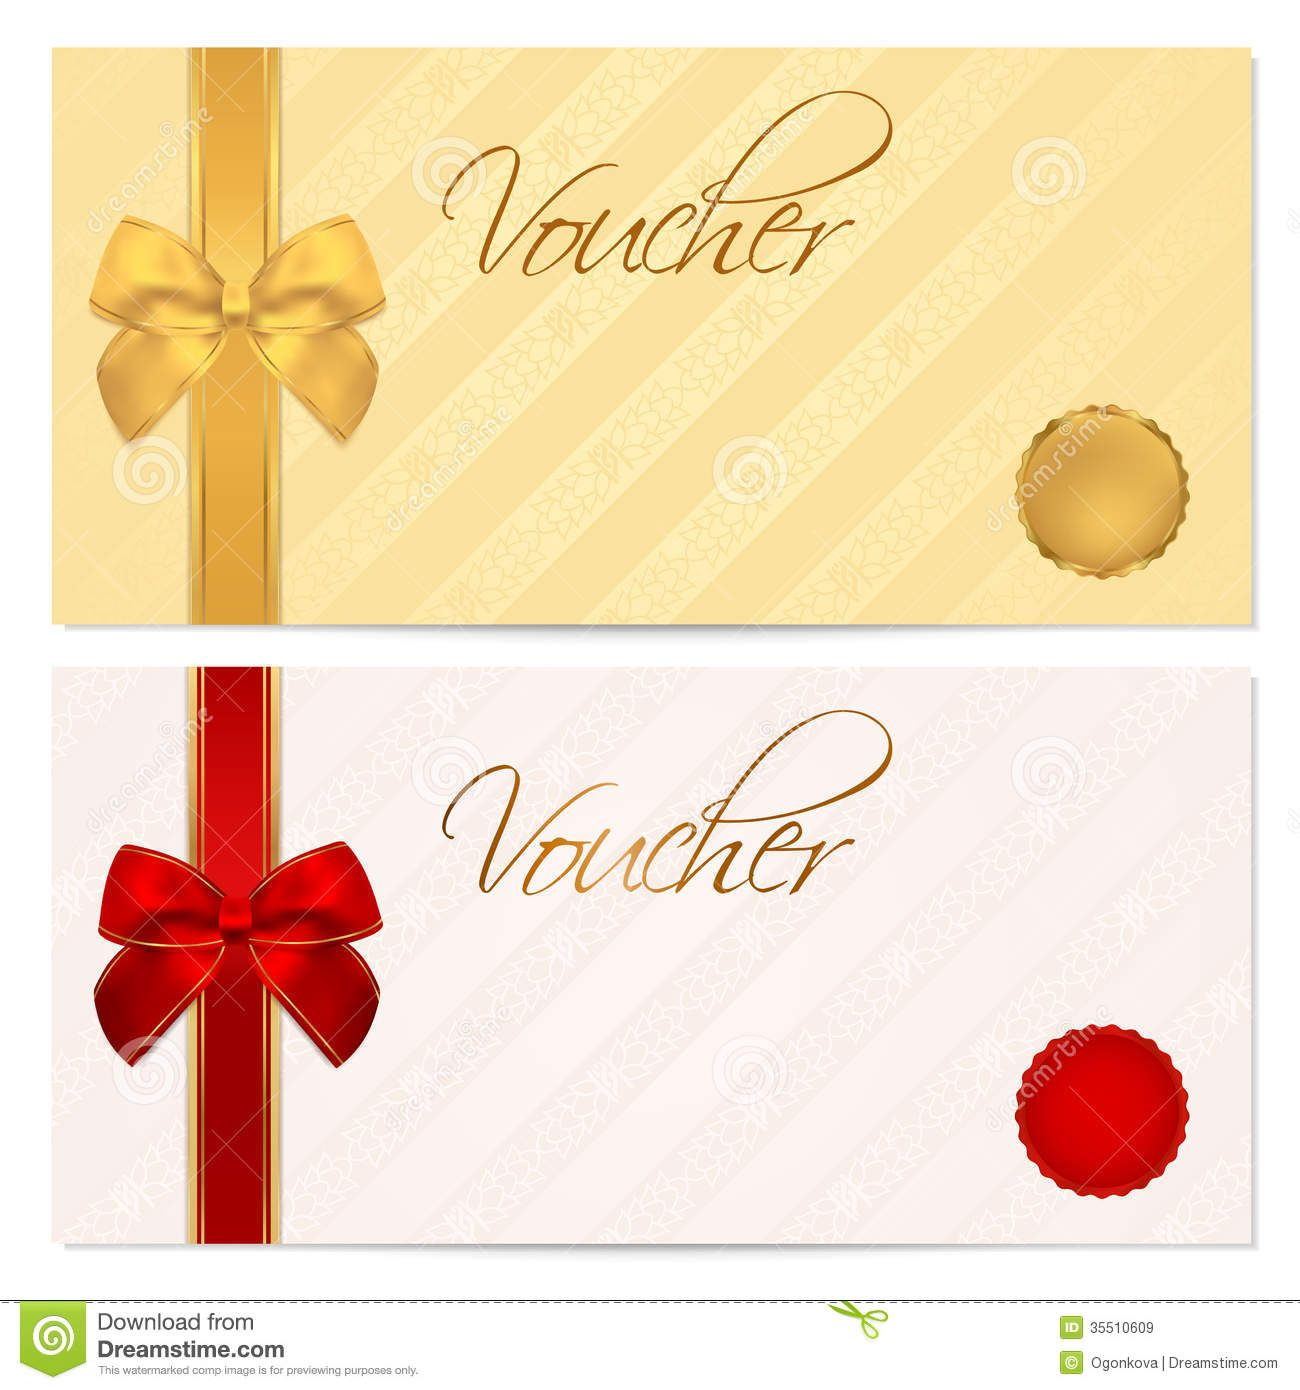 Christmas Gift Voucher Template   Party  Christmas